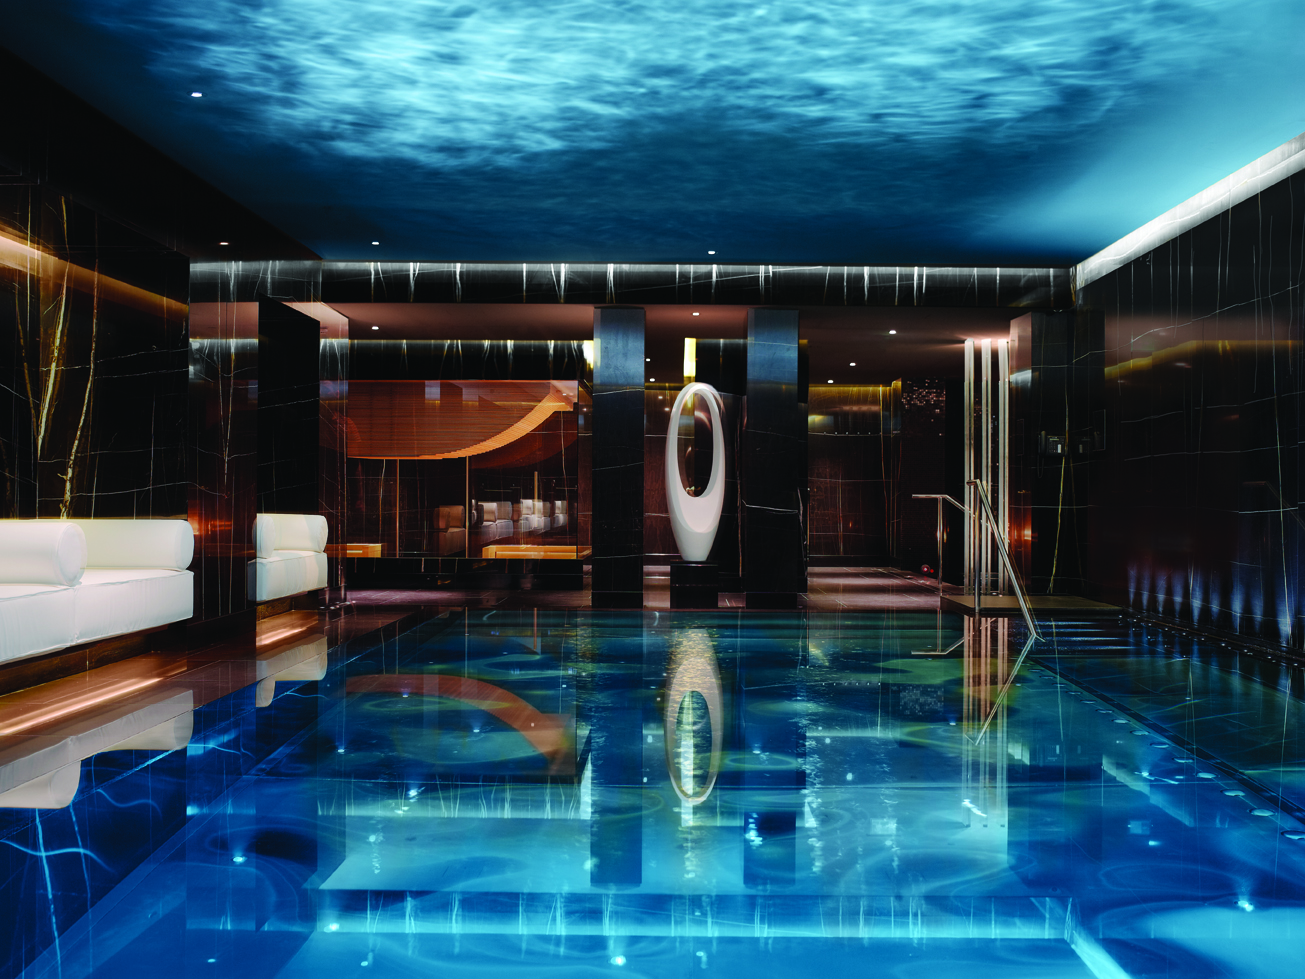 Clarins Day Spa